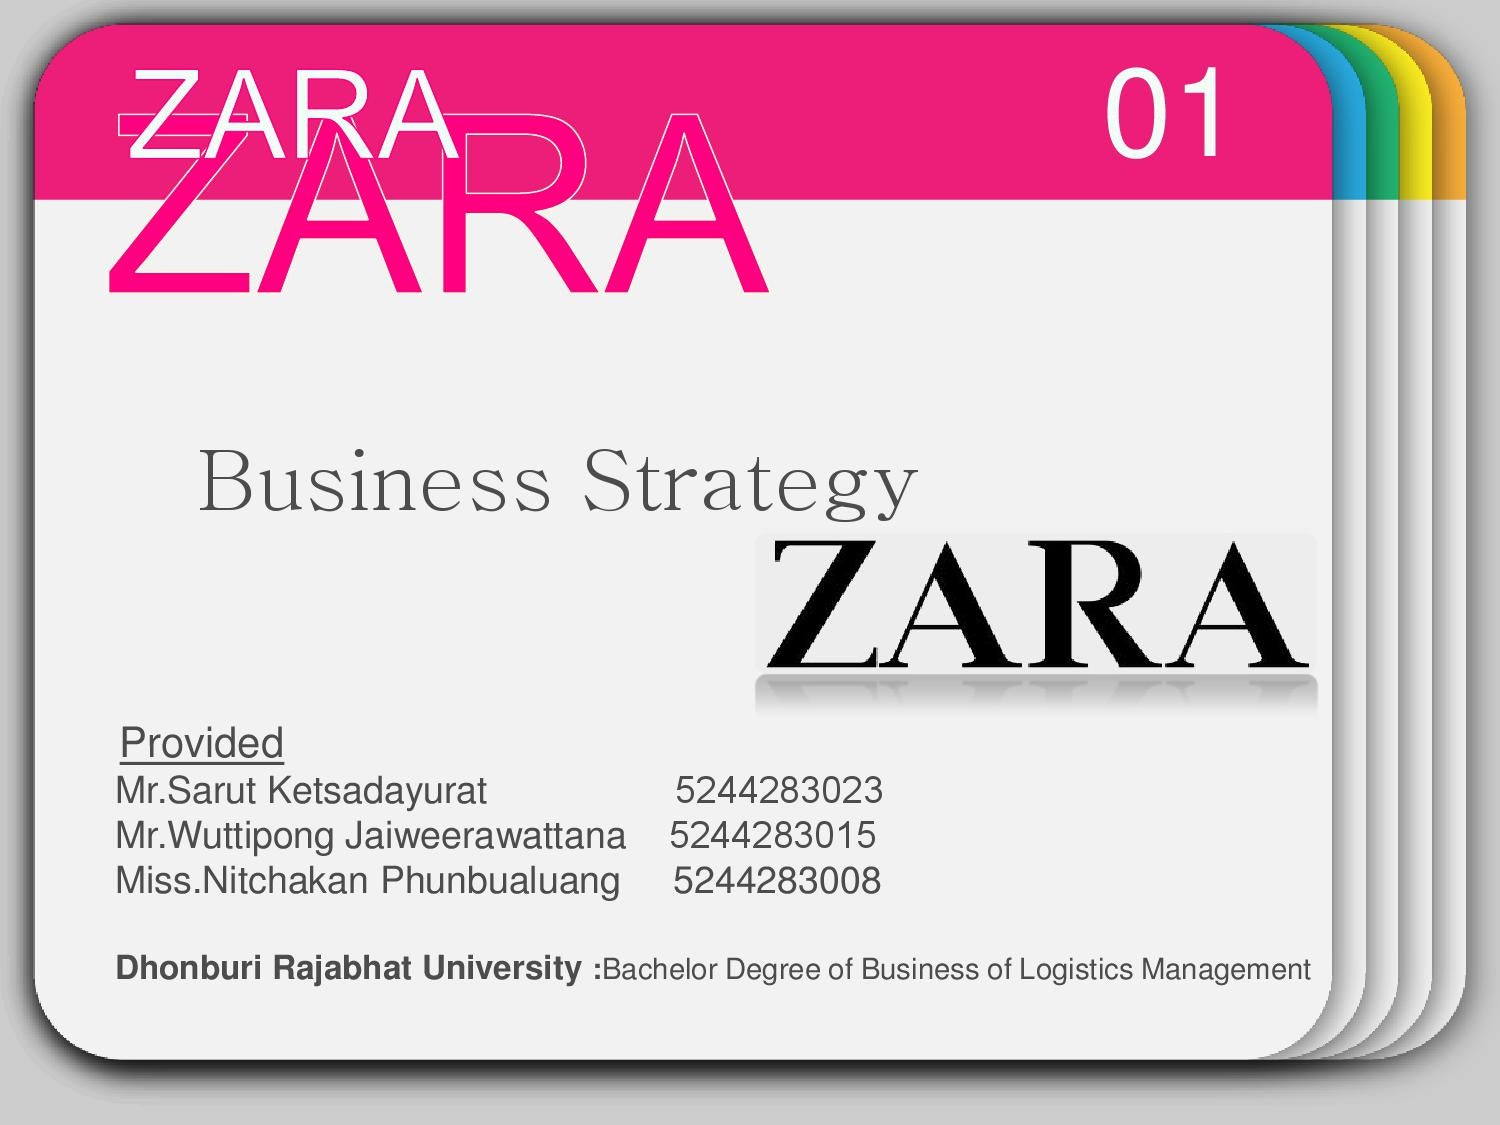 zara strategic analysis anil nembang zara case study odyssey  business strategy zara by sarut ketsadayurat issuu